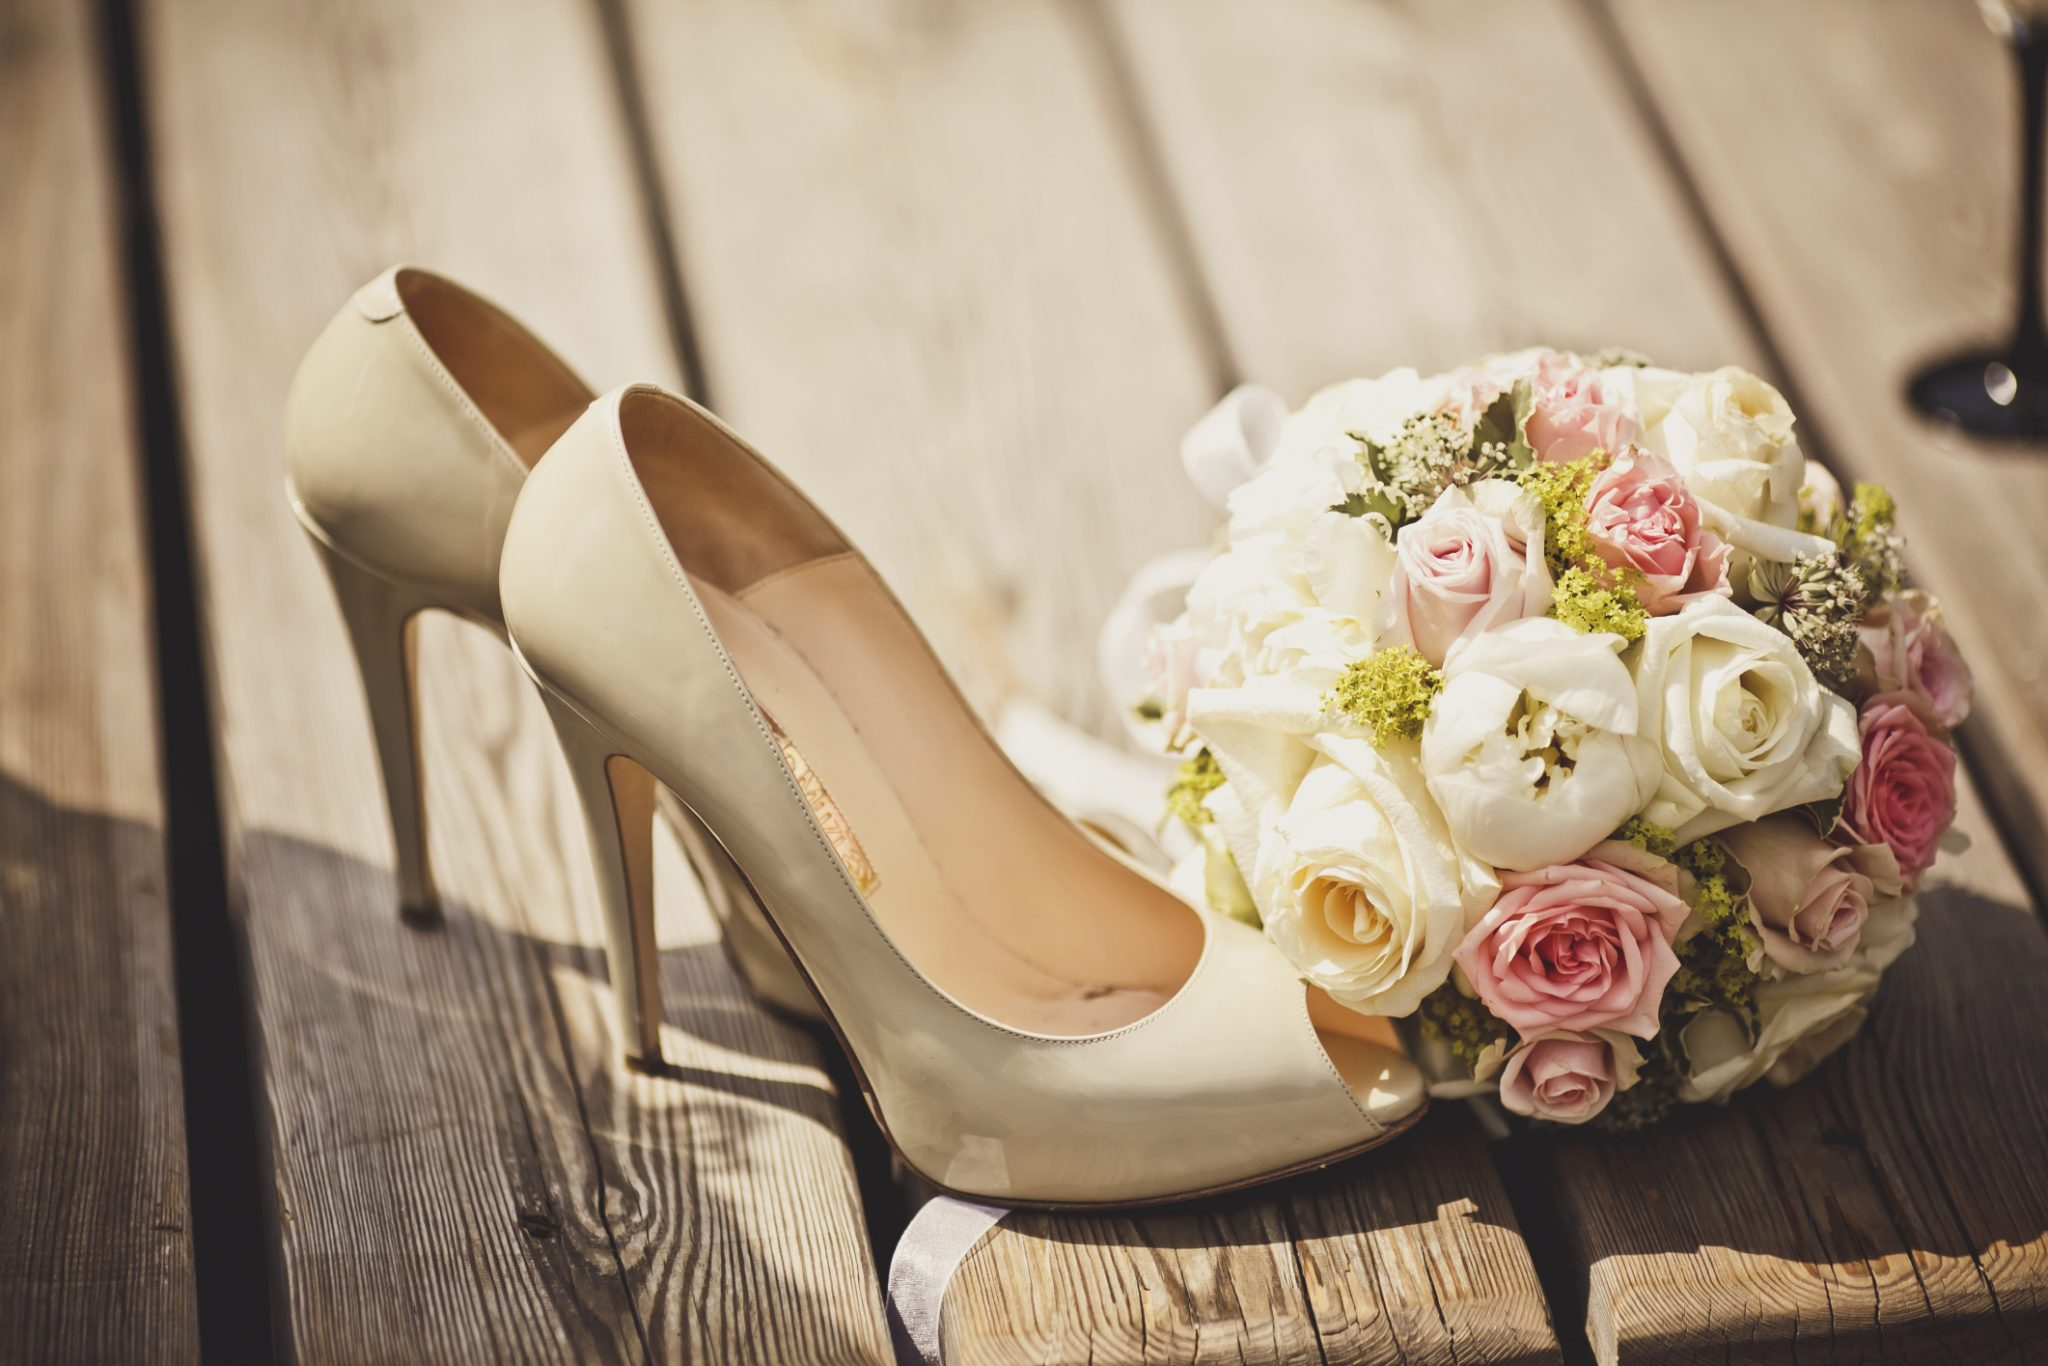 Bridal Shoes; the most affordable bridal shoes out there